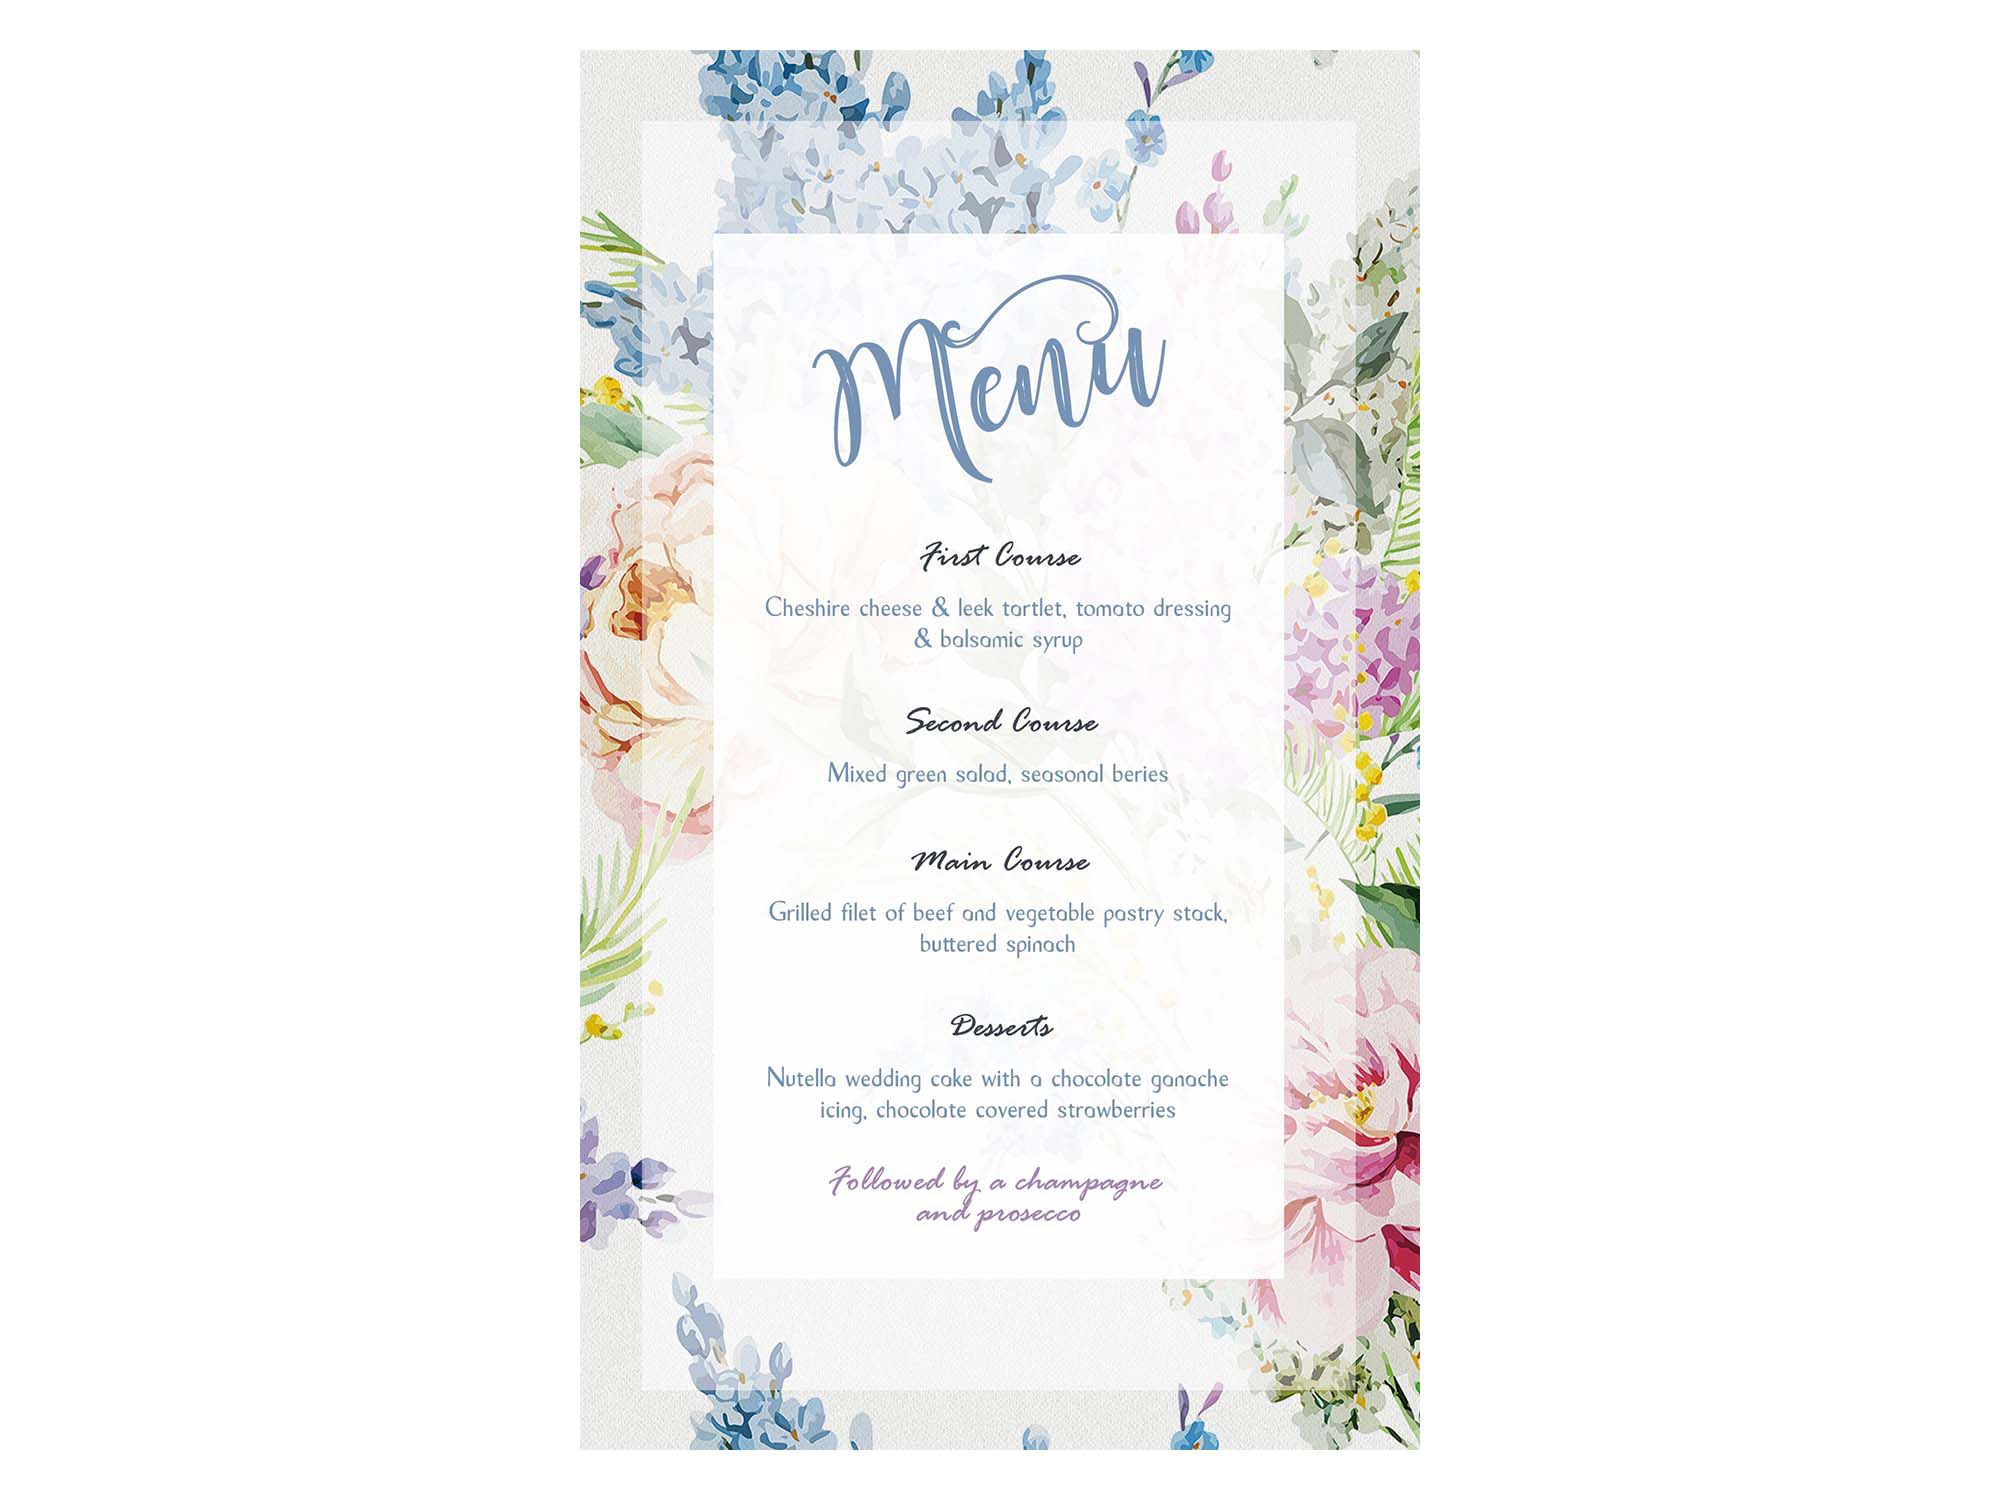 007 Formidable Free Wedding Menu Template Highest Clarity  Templates Printable For MacFull